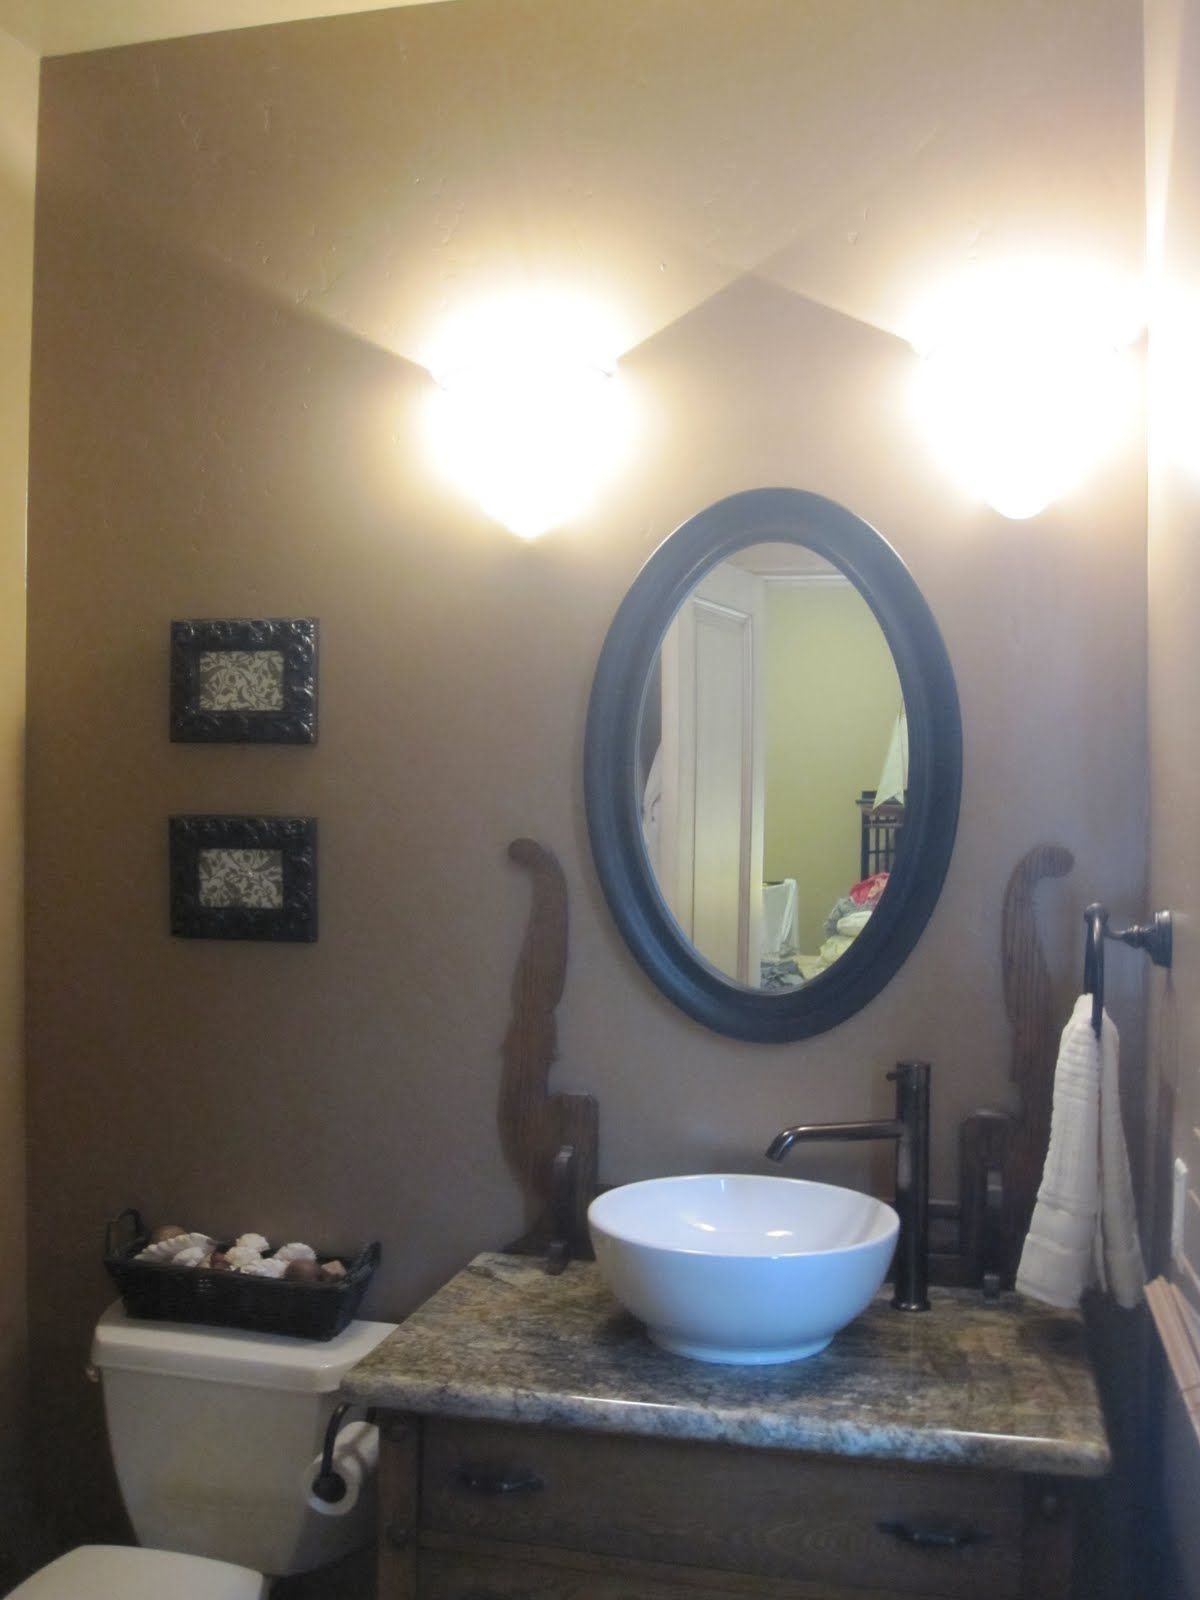 Ordinaire Bathroom Mirrors With Lights Attached